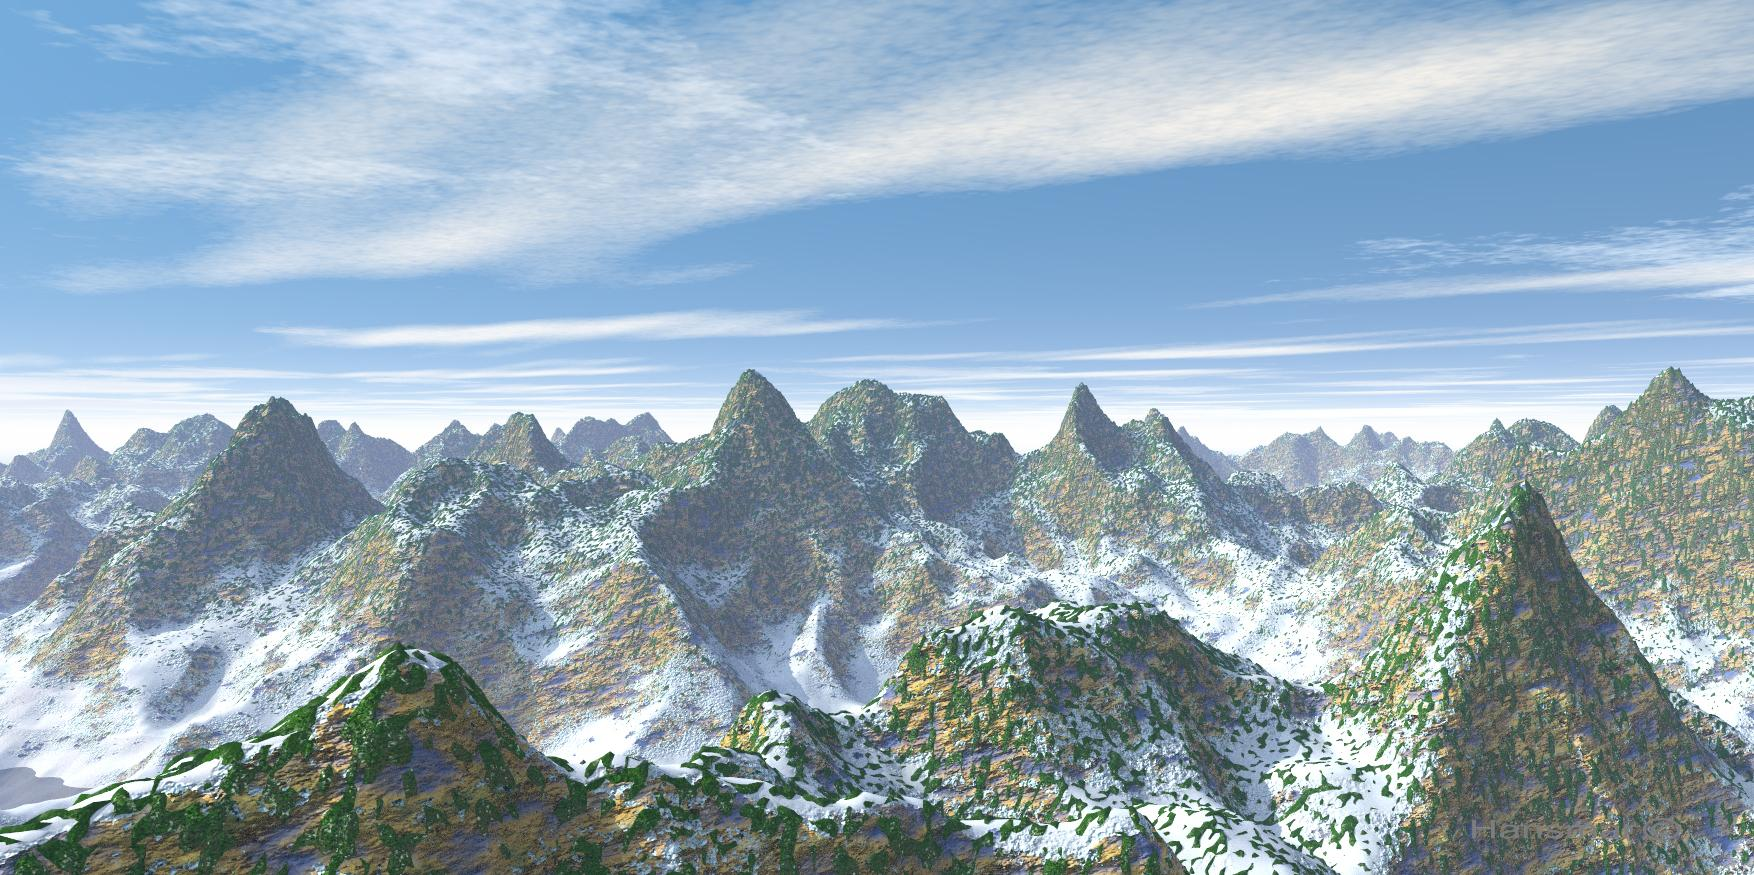 Terrain Editor and Heightmap Generators for Bryce - Page 2 - Daz 3D